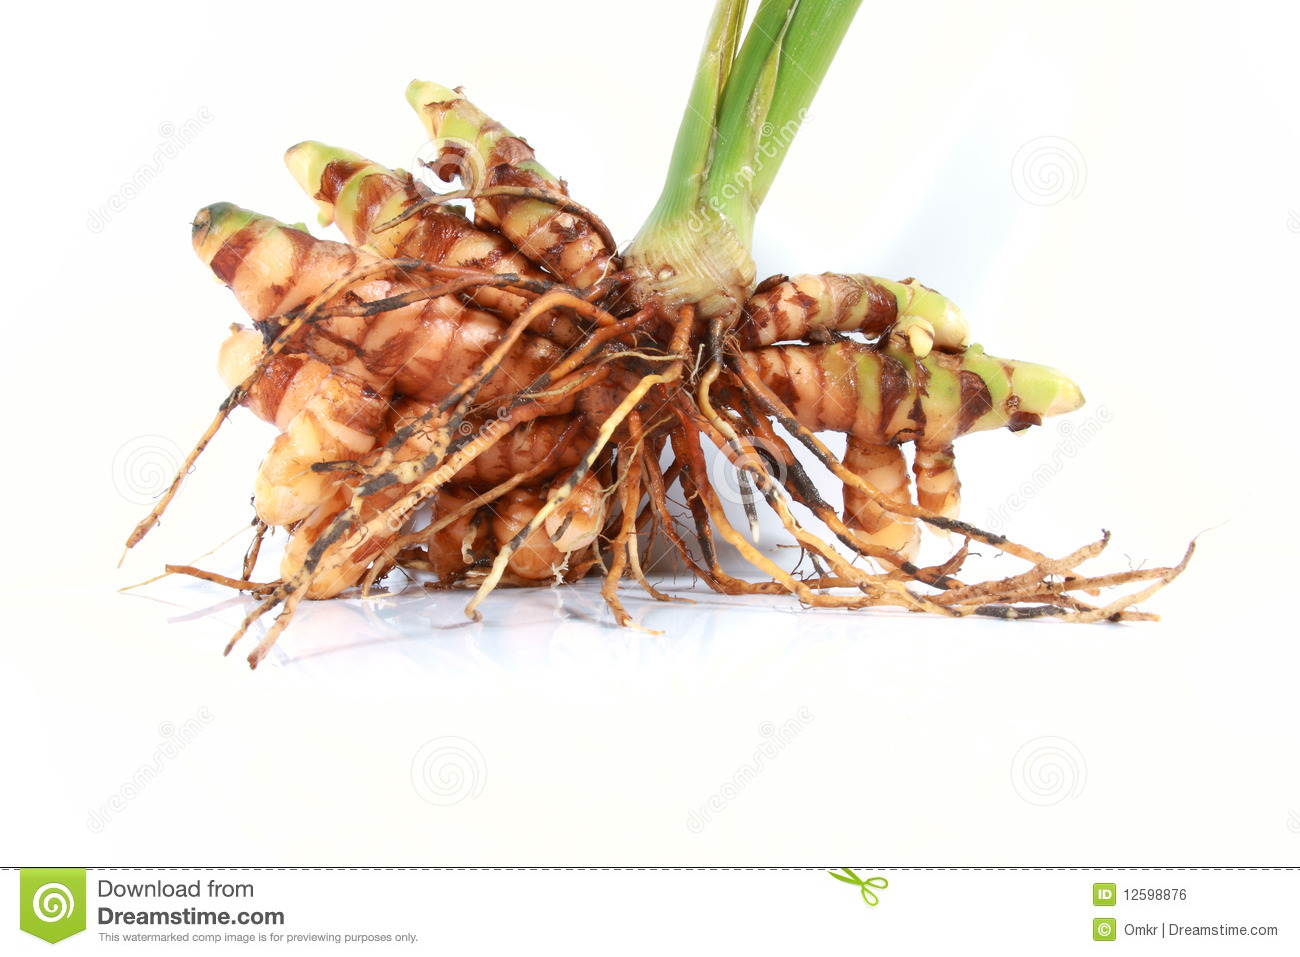 raw-turmeric-plant-roots-12598876.jpg